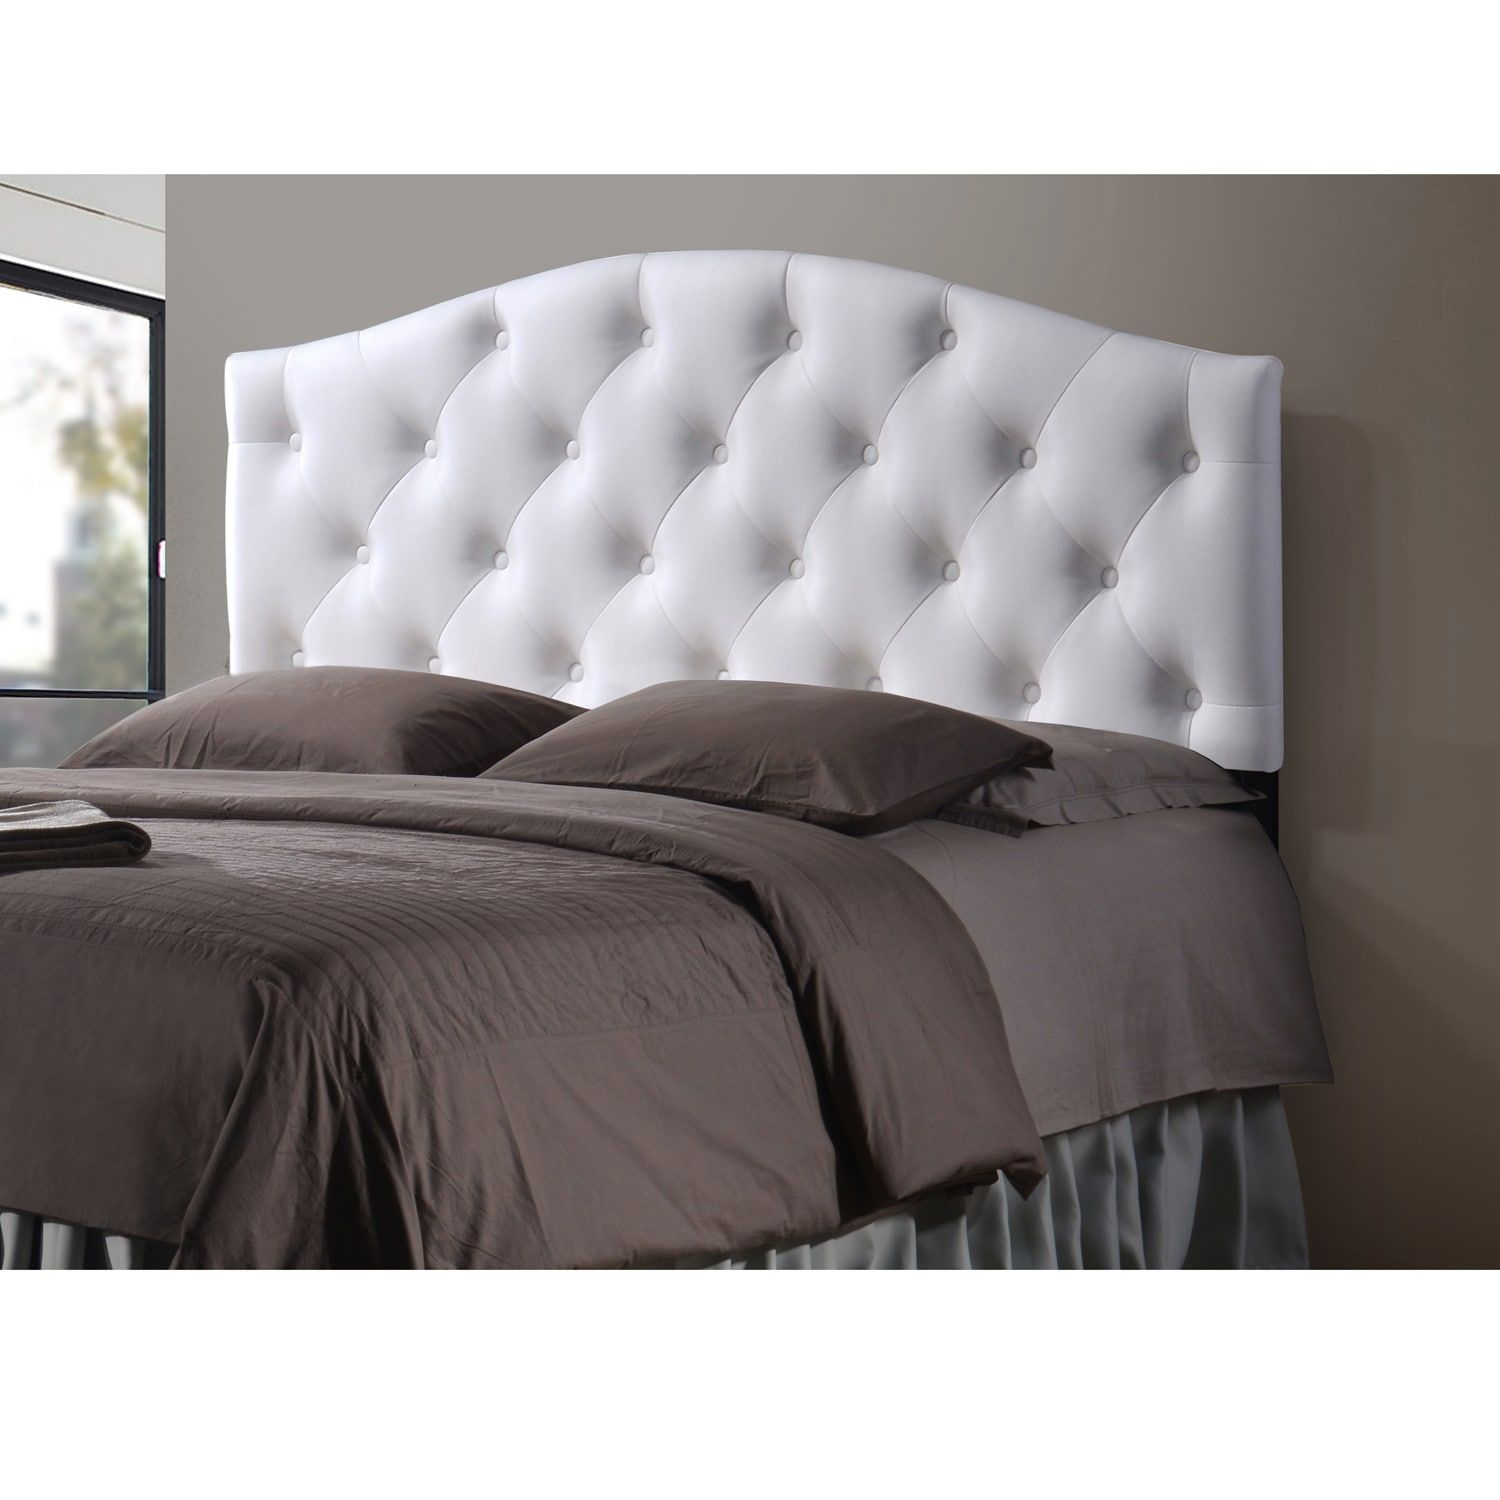 Full Tufted Headboard White Faux Leather Bed Button Full Size Arched